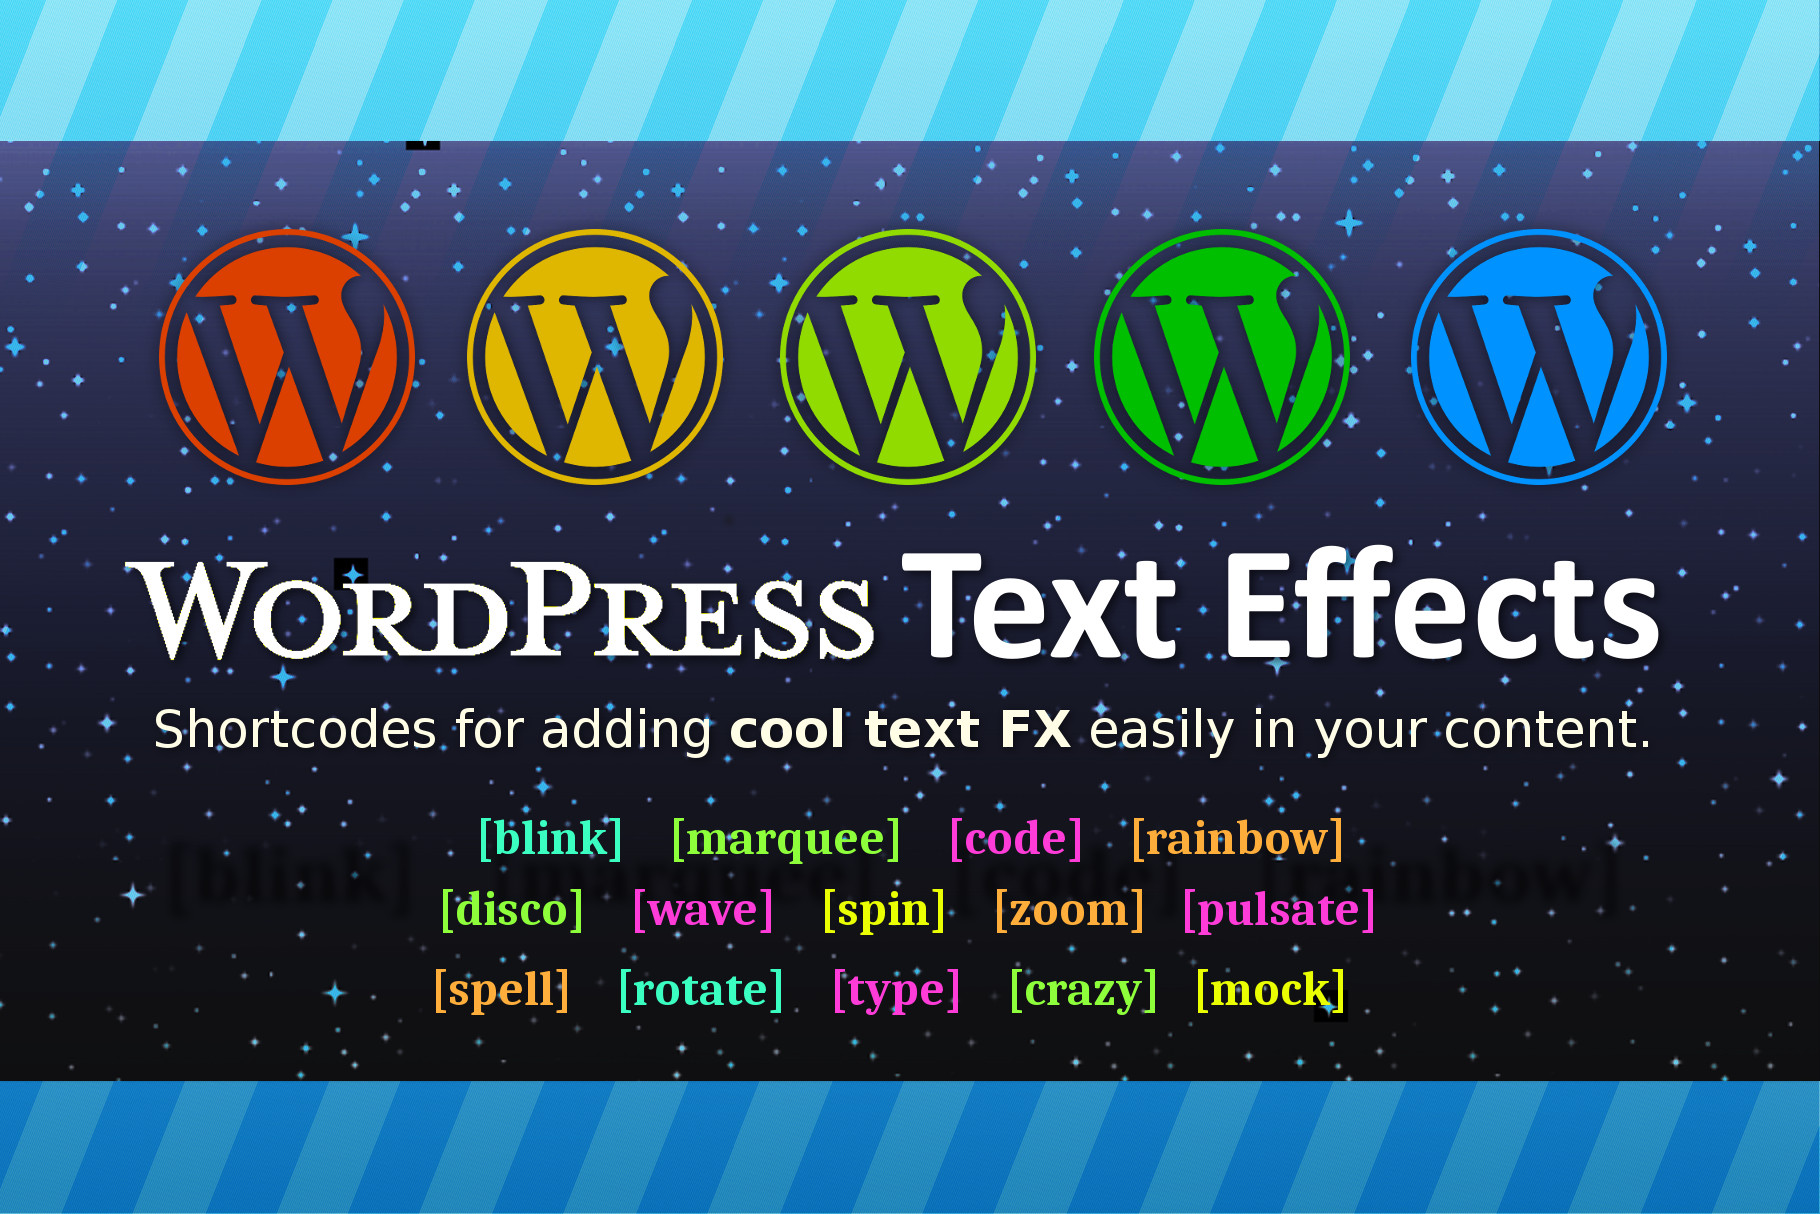 WP Text Effects Plugin